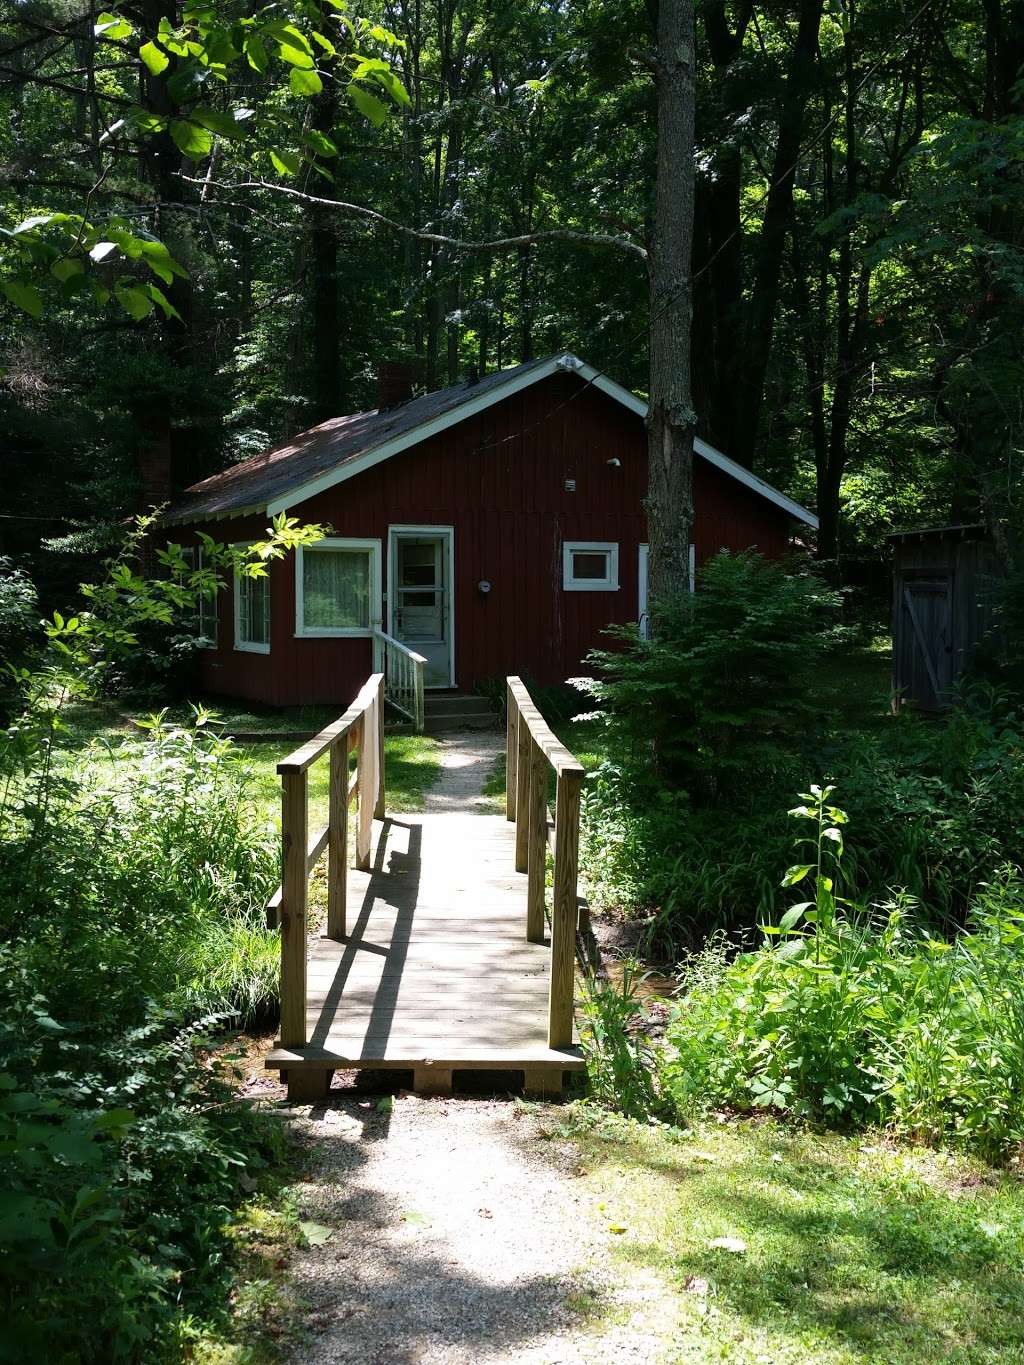 Shady Hollow Cabin - real estate agency  | Photo 4 of 5 | Address: 3601 Greasy Creek Rd, Nashville, IN 47448, USA | Phone: (812) 597-0577